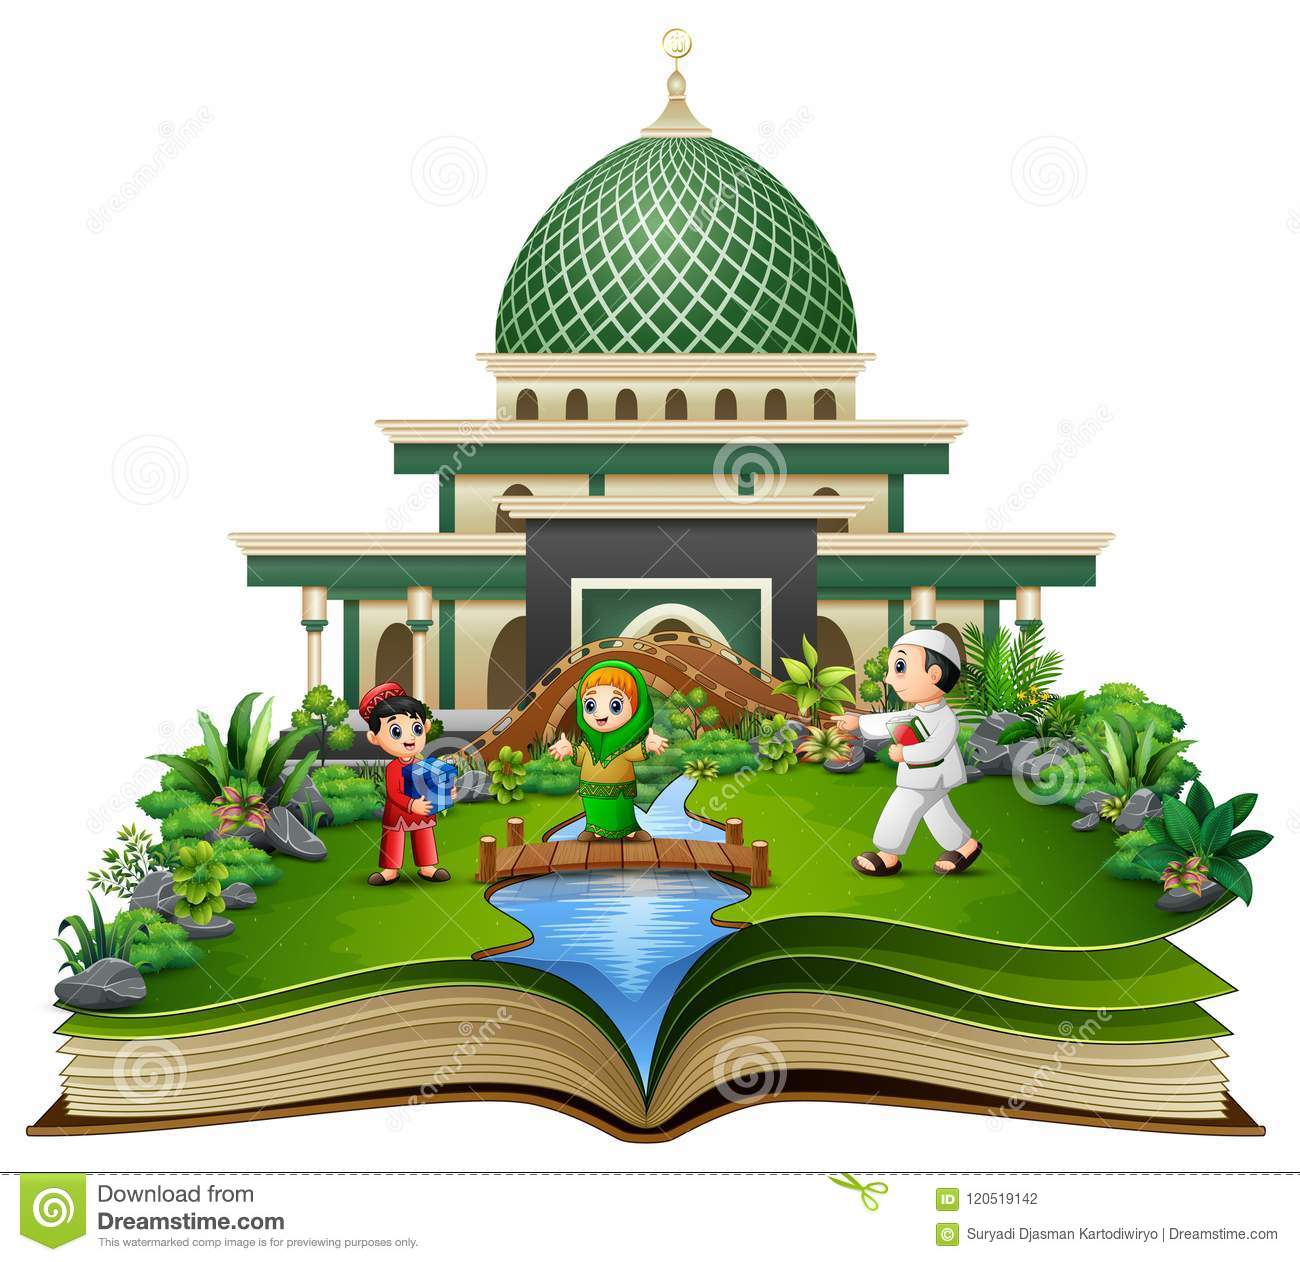 List of mosques in Egypt